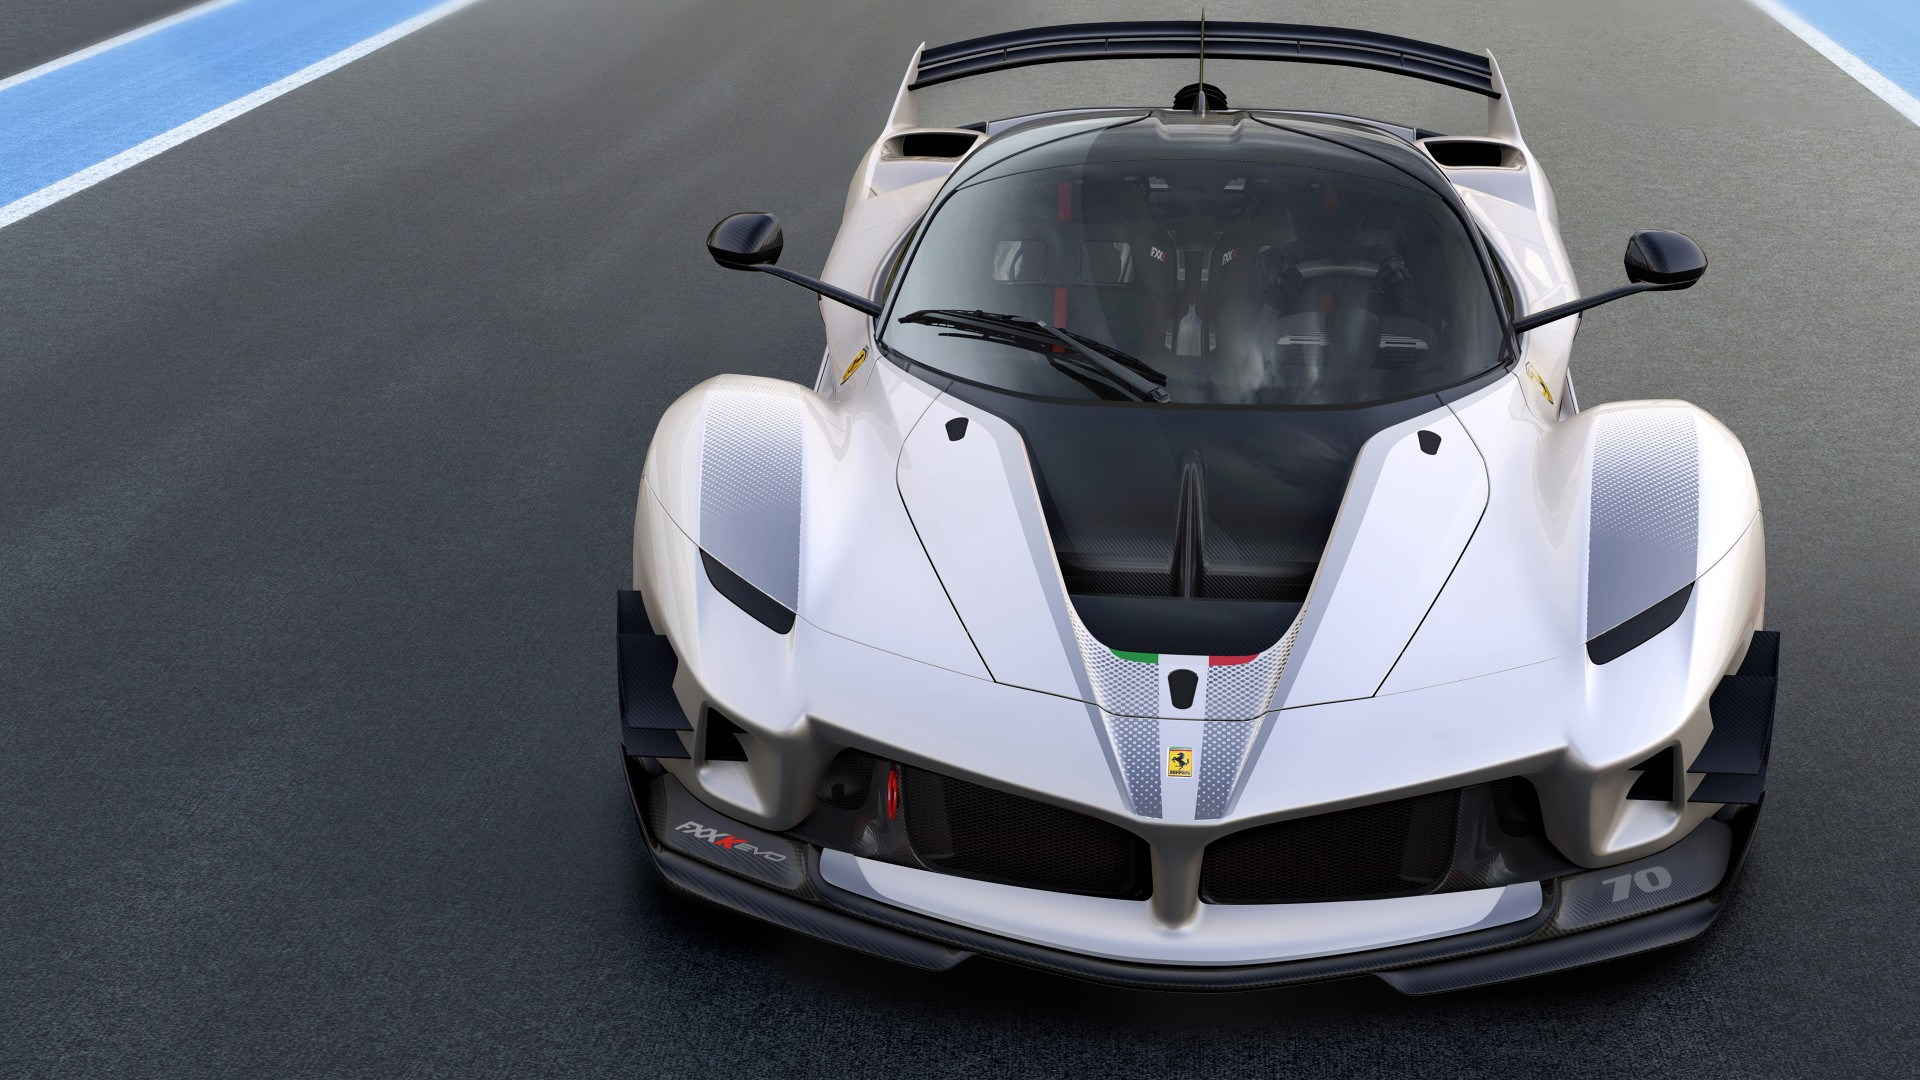 2018 Ferrari FXX K Evo 4K 4 Wallpaper | HD Car Wallpapers ...